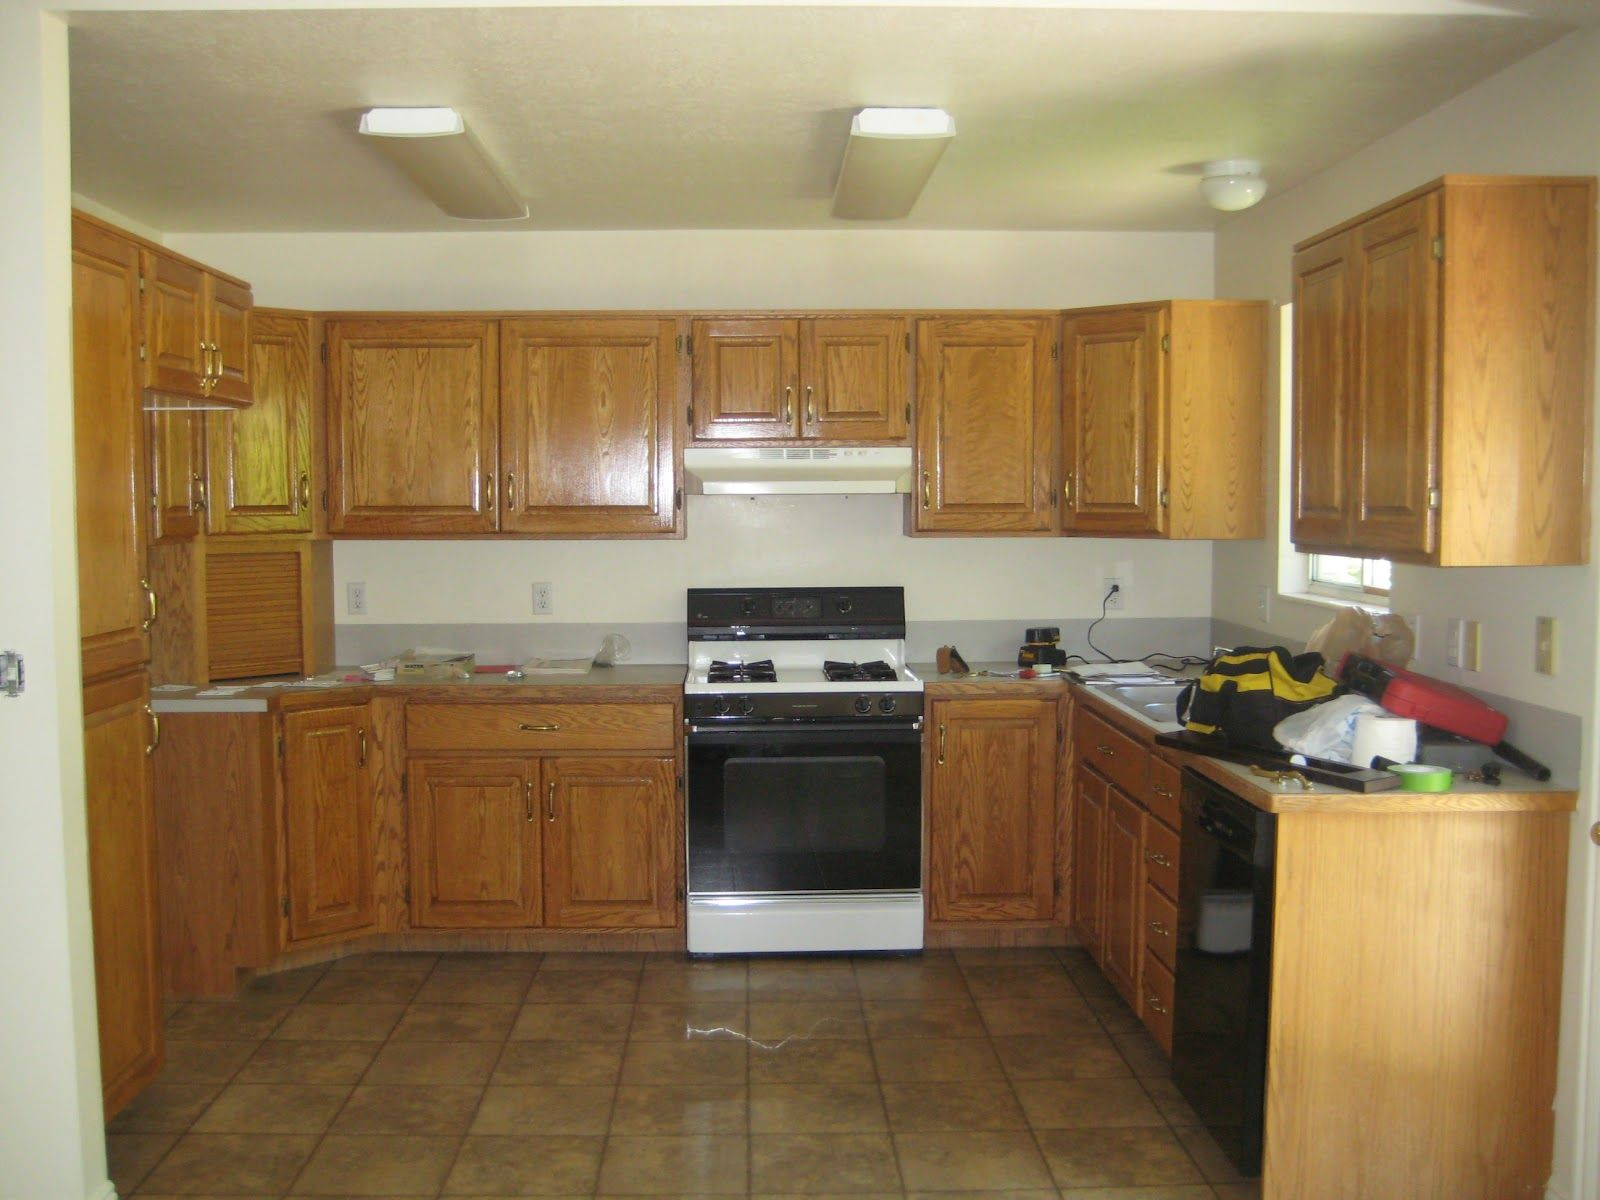 Paint Colors For Kitchen With Honey Oak Cabinets  Home Extraordinary Kitchen Designs With Oak Cabinets Inspiration Design